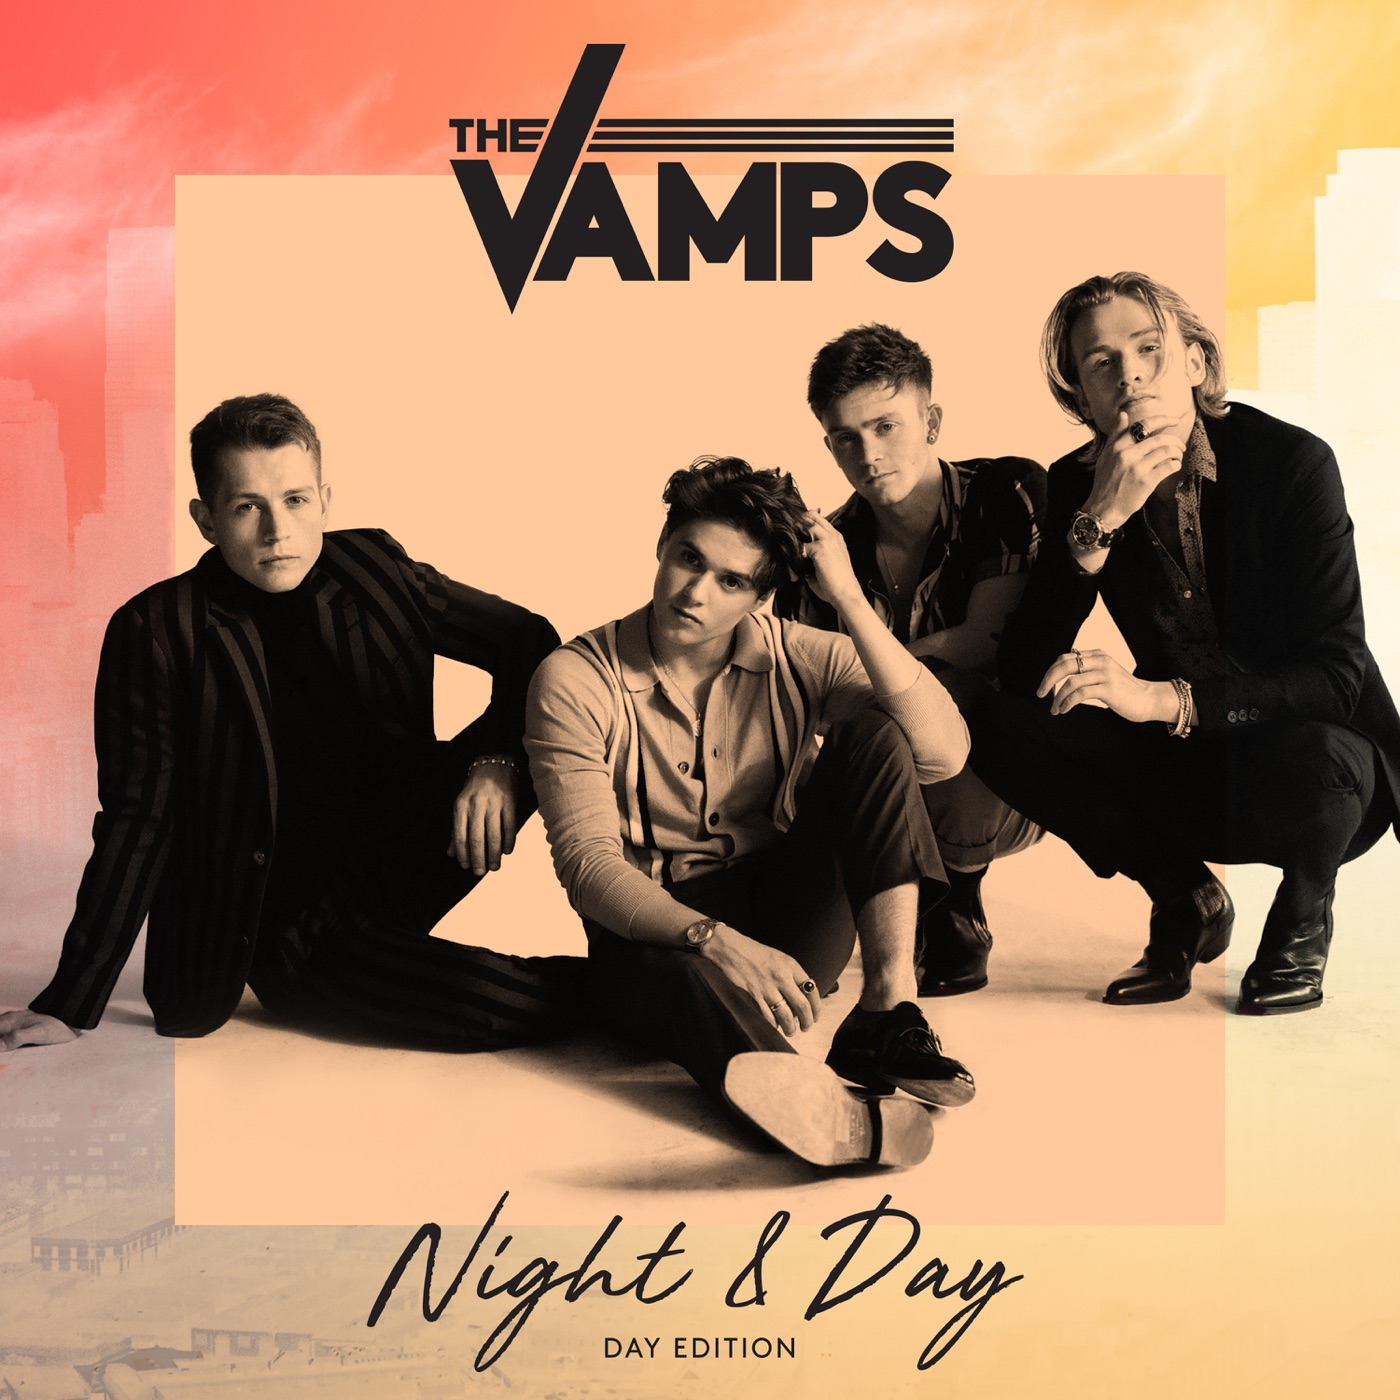 Download the vamps night day day edition itunes plus aac m4a mastered for itunes malvernweather Choice Image